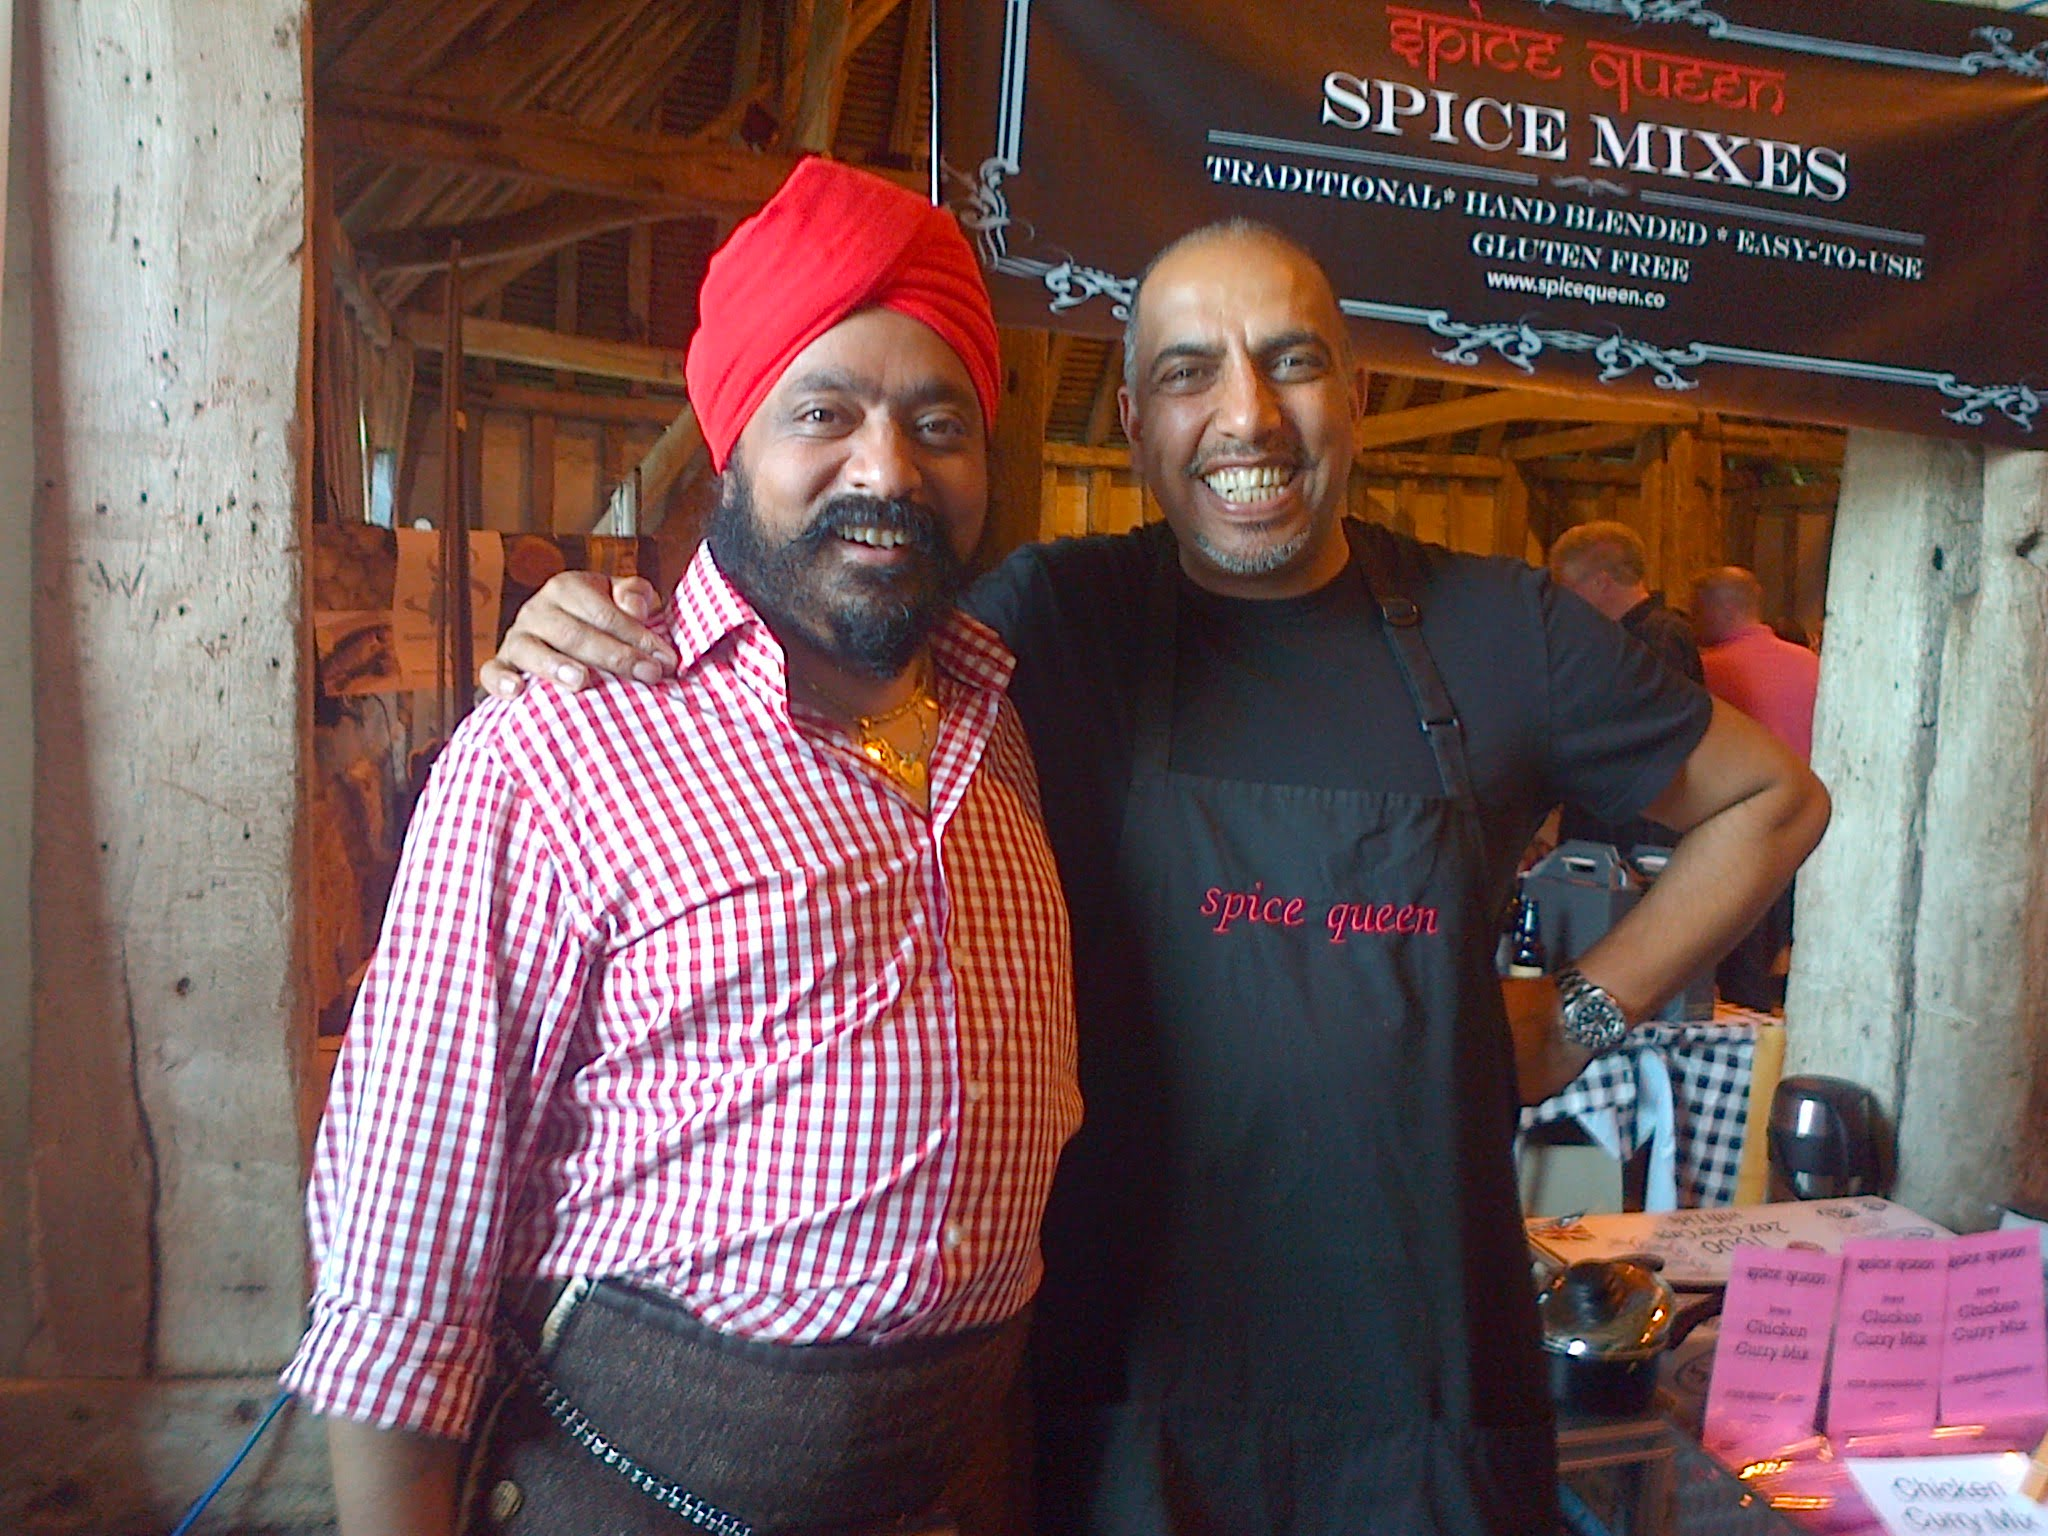 Spice King with Spice Queen, Essex Food Festival 2014